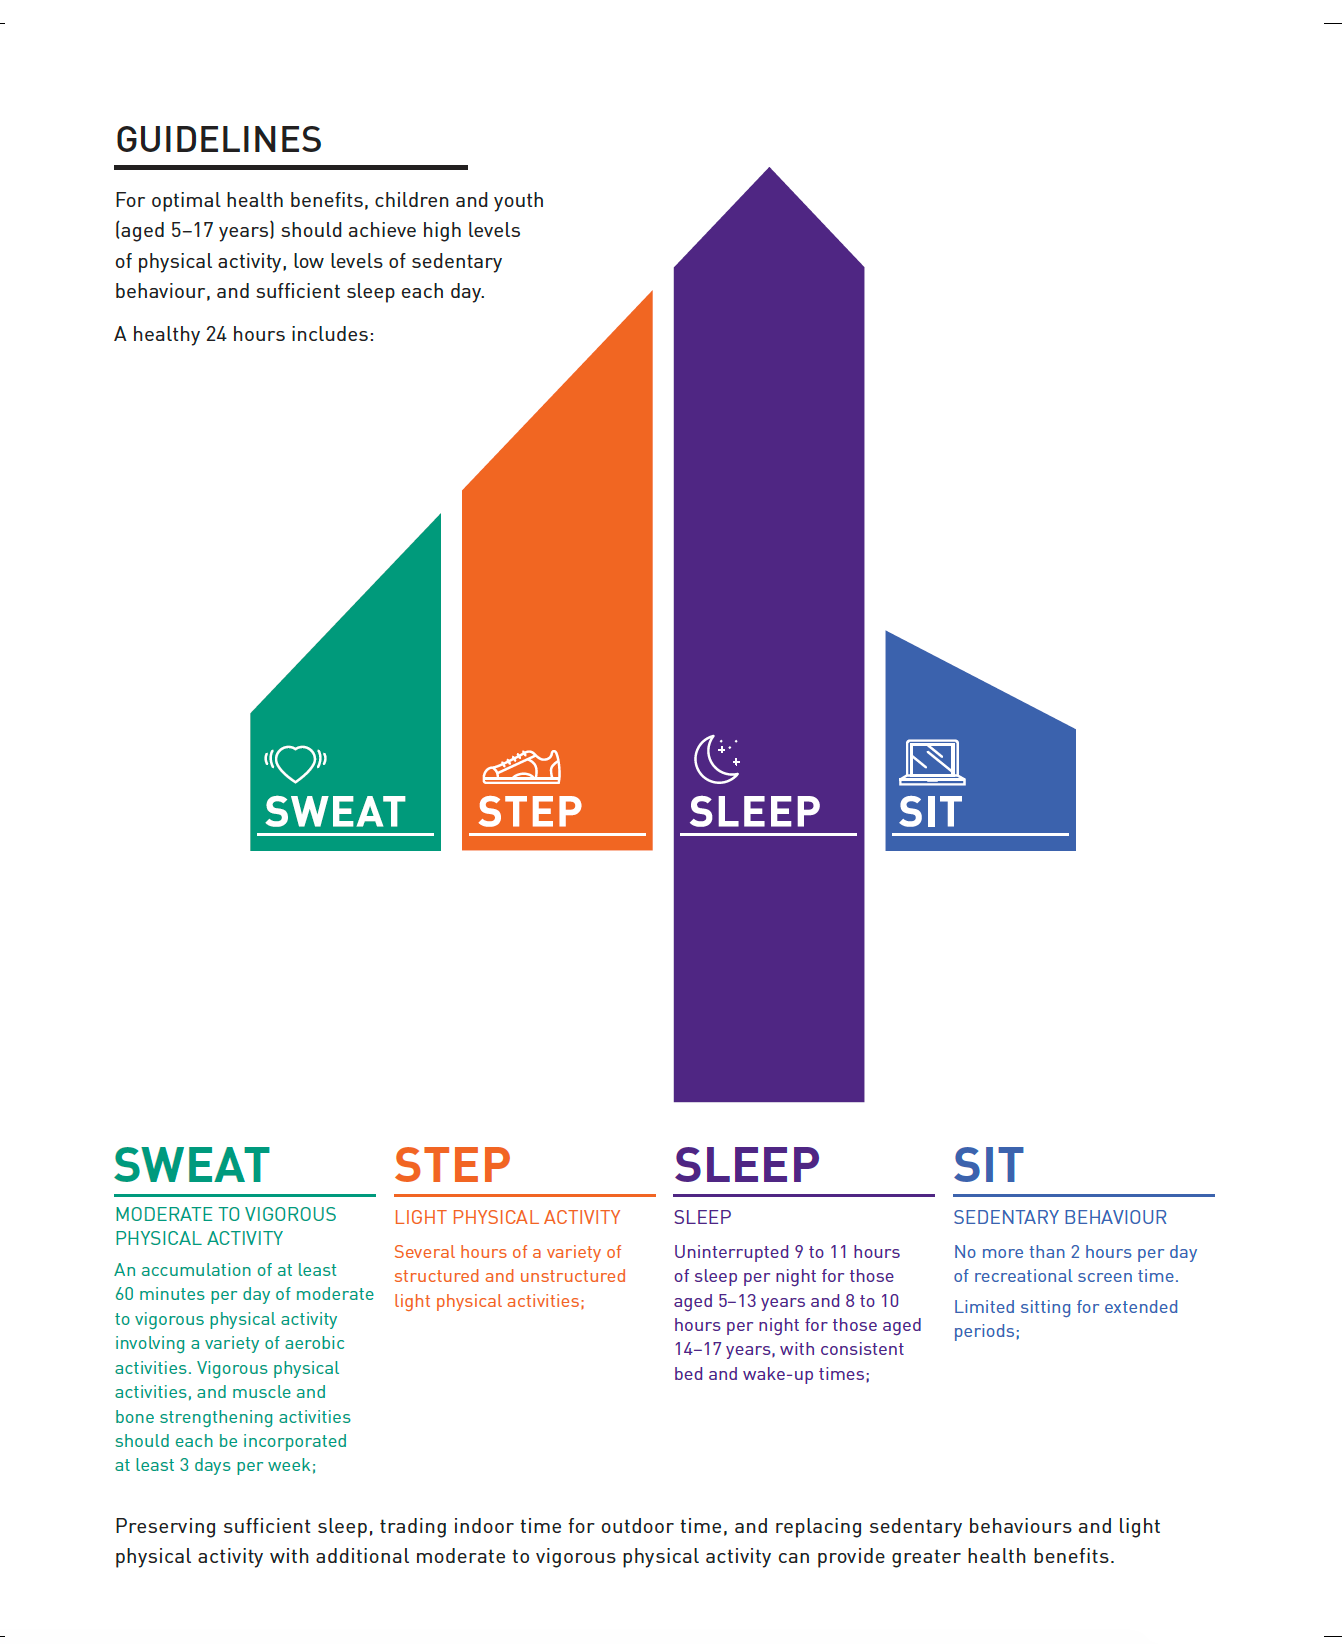 Canadian 24-Hour Movement Guidelines for Children and Youth: Tear Sheets